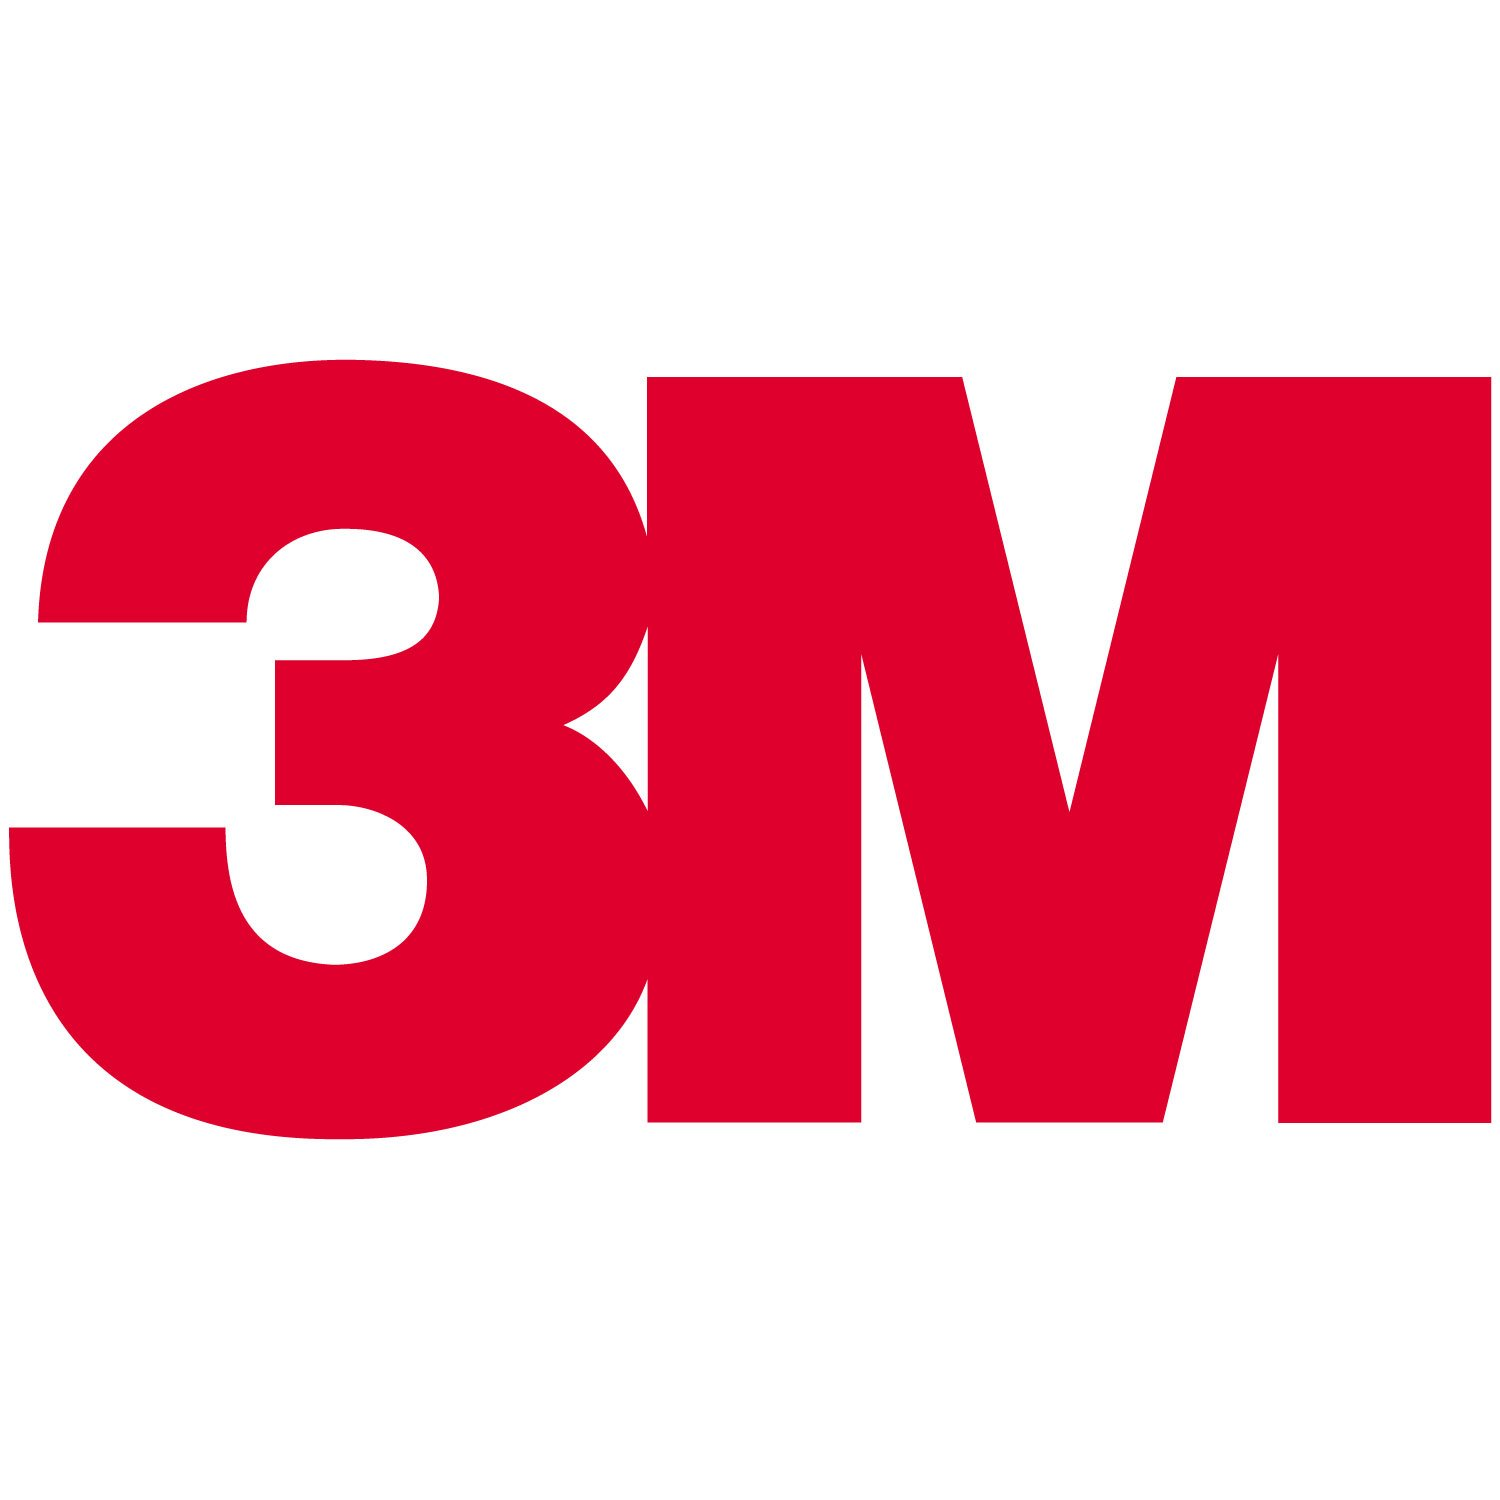 3M Safety 142-5P71 Particulate Filter 5P71/07194(AAD), P95 Respiratory Protection (Box of 10) by 3M Safety (Image #2)